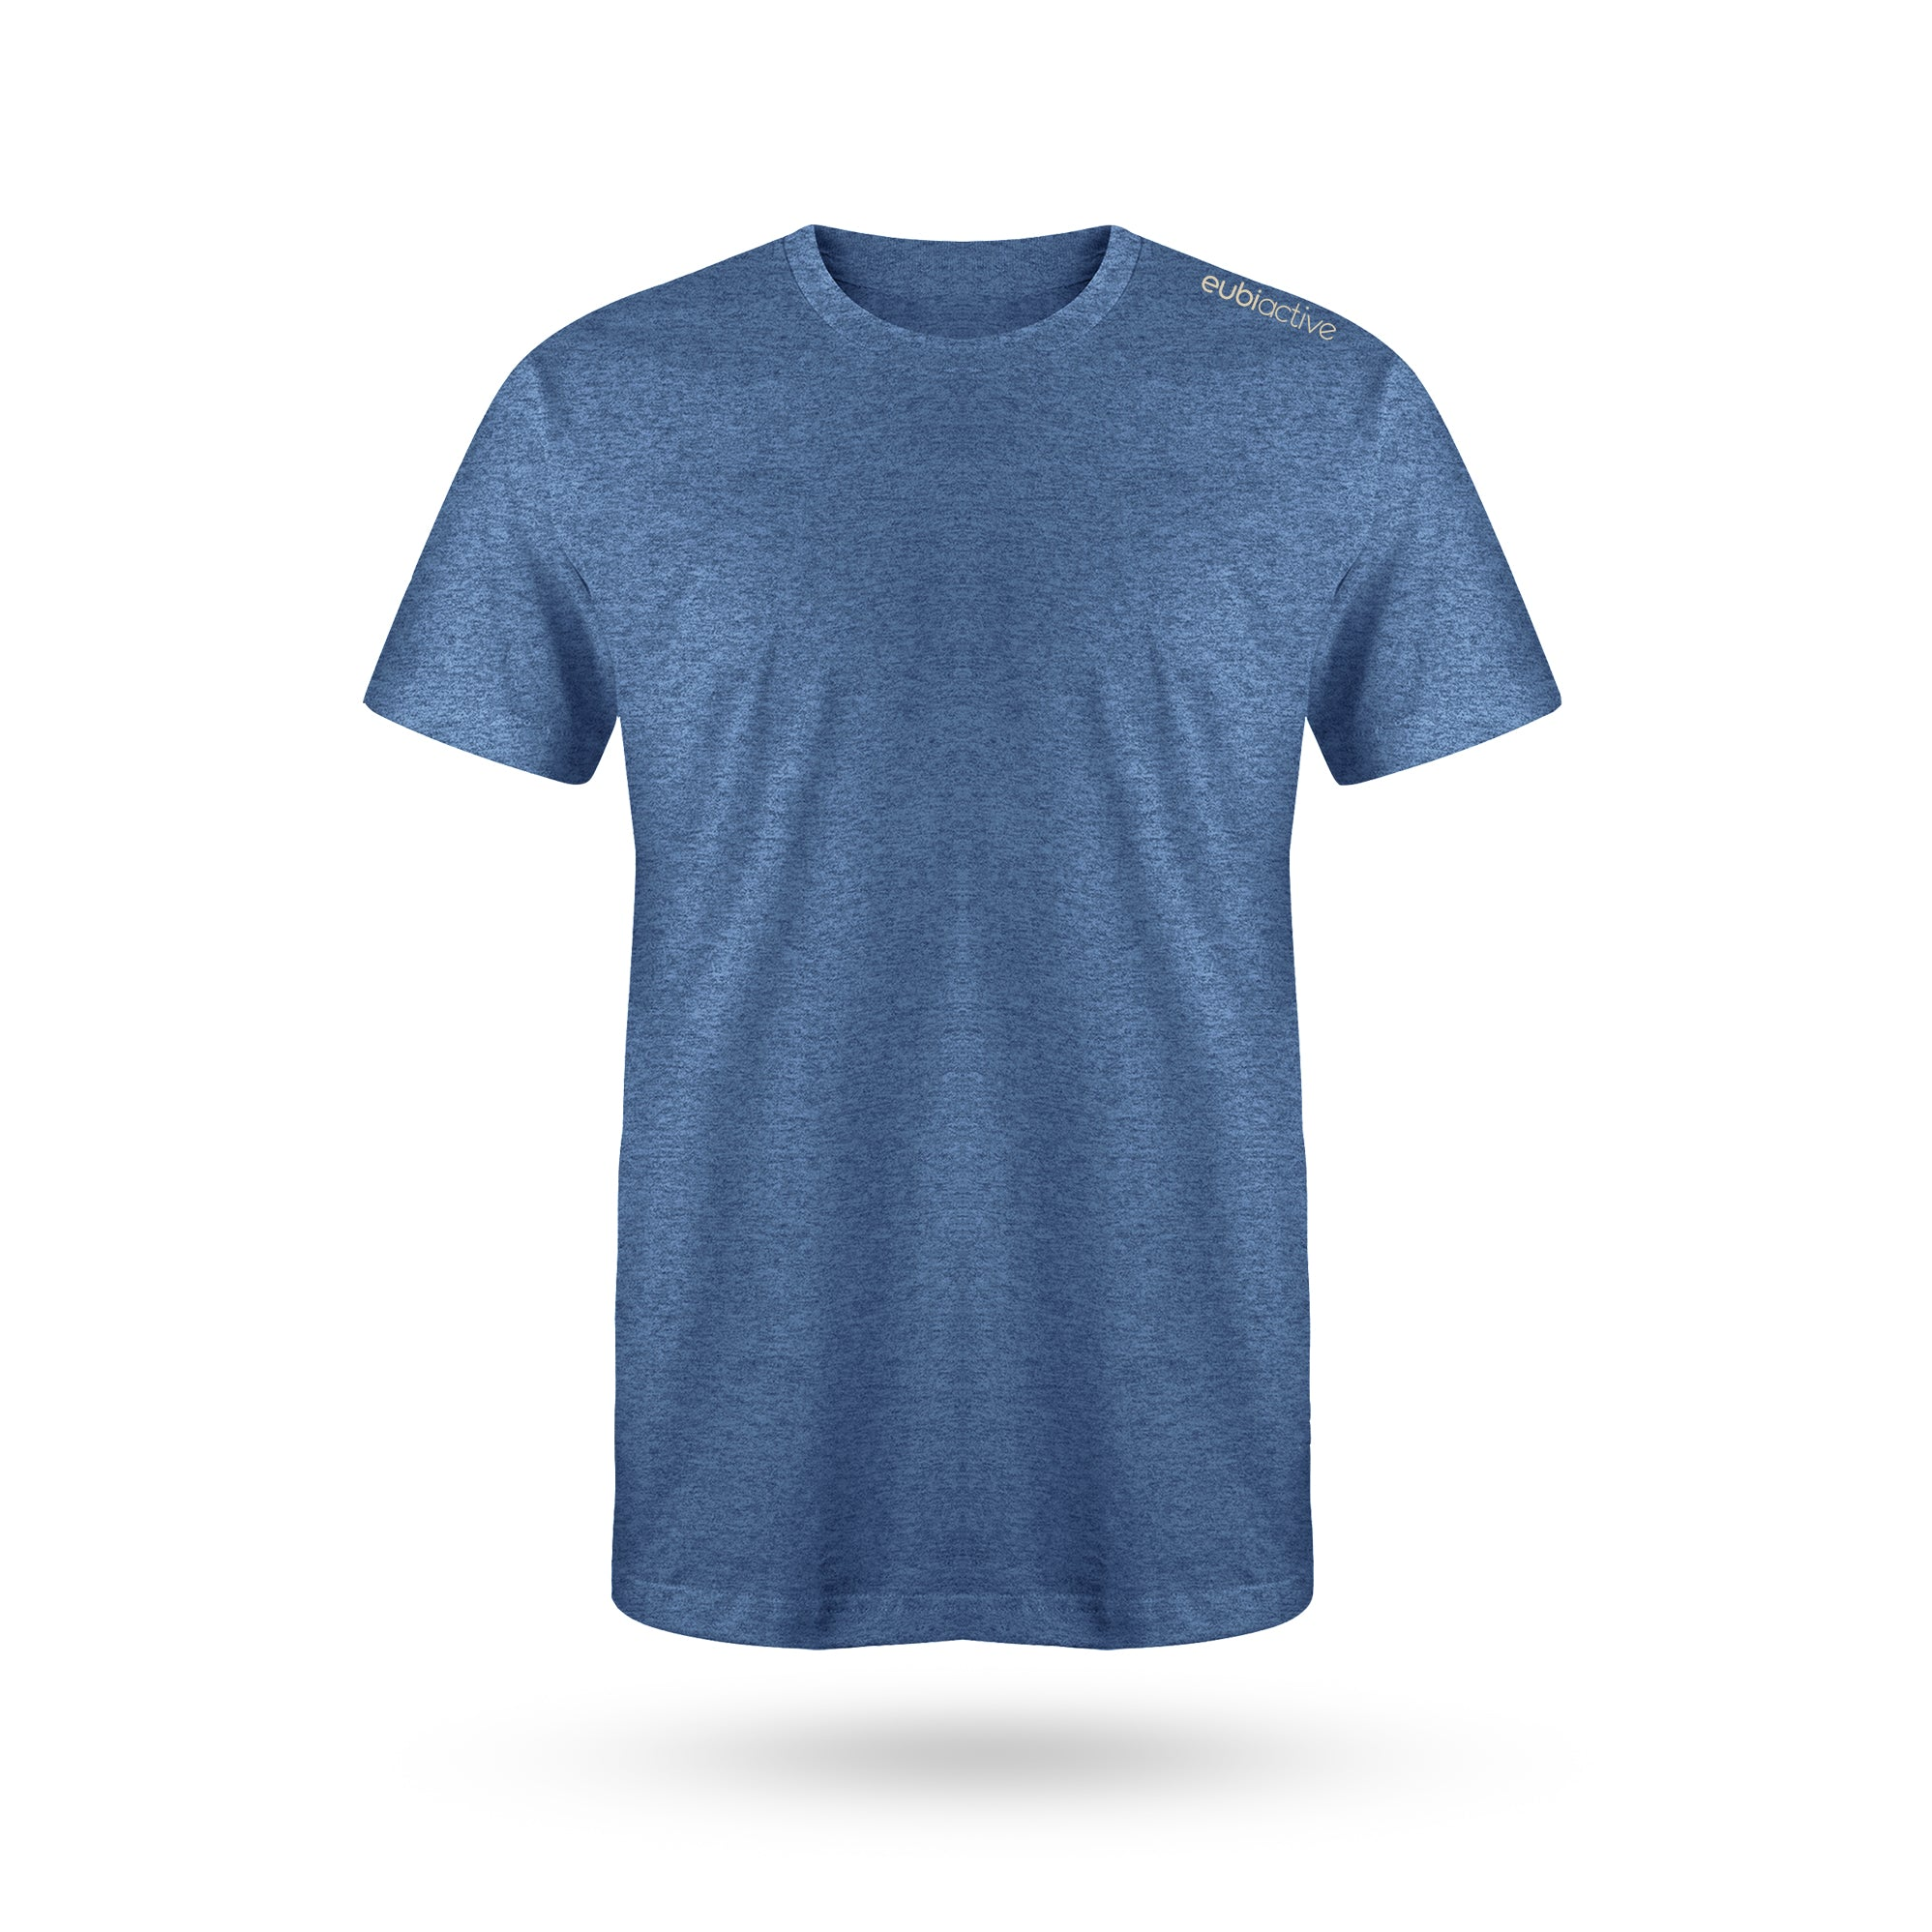 [SALE] Featherlite Active Tee - Navy Blue